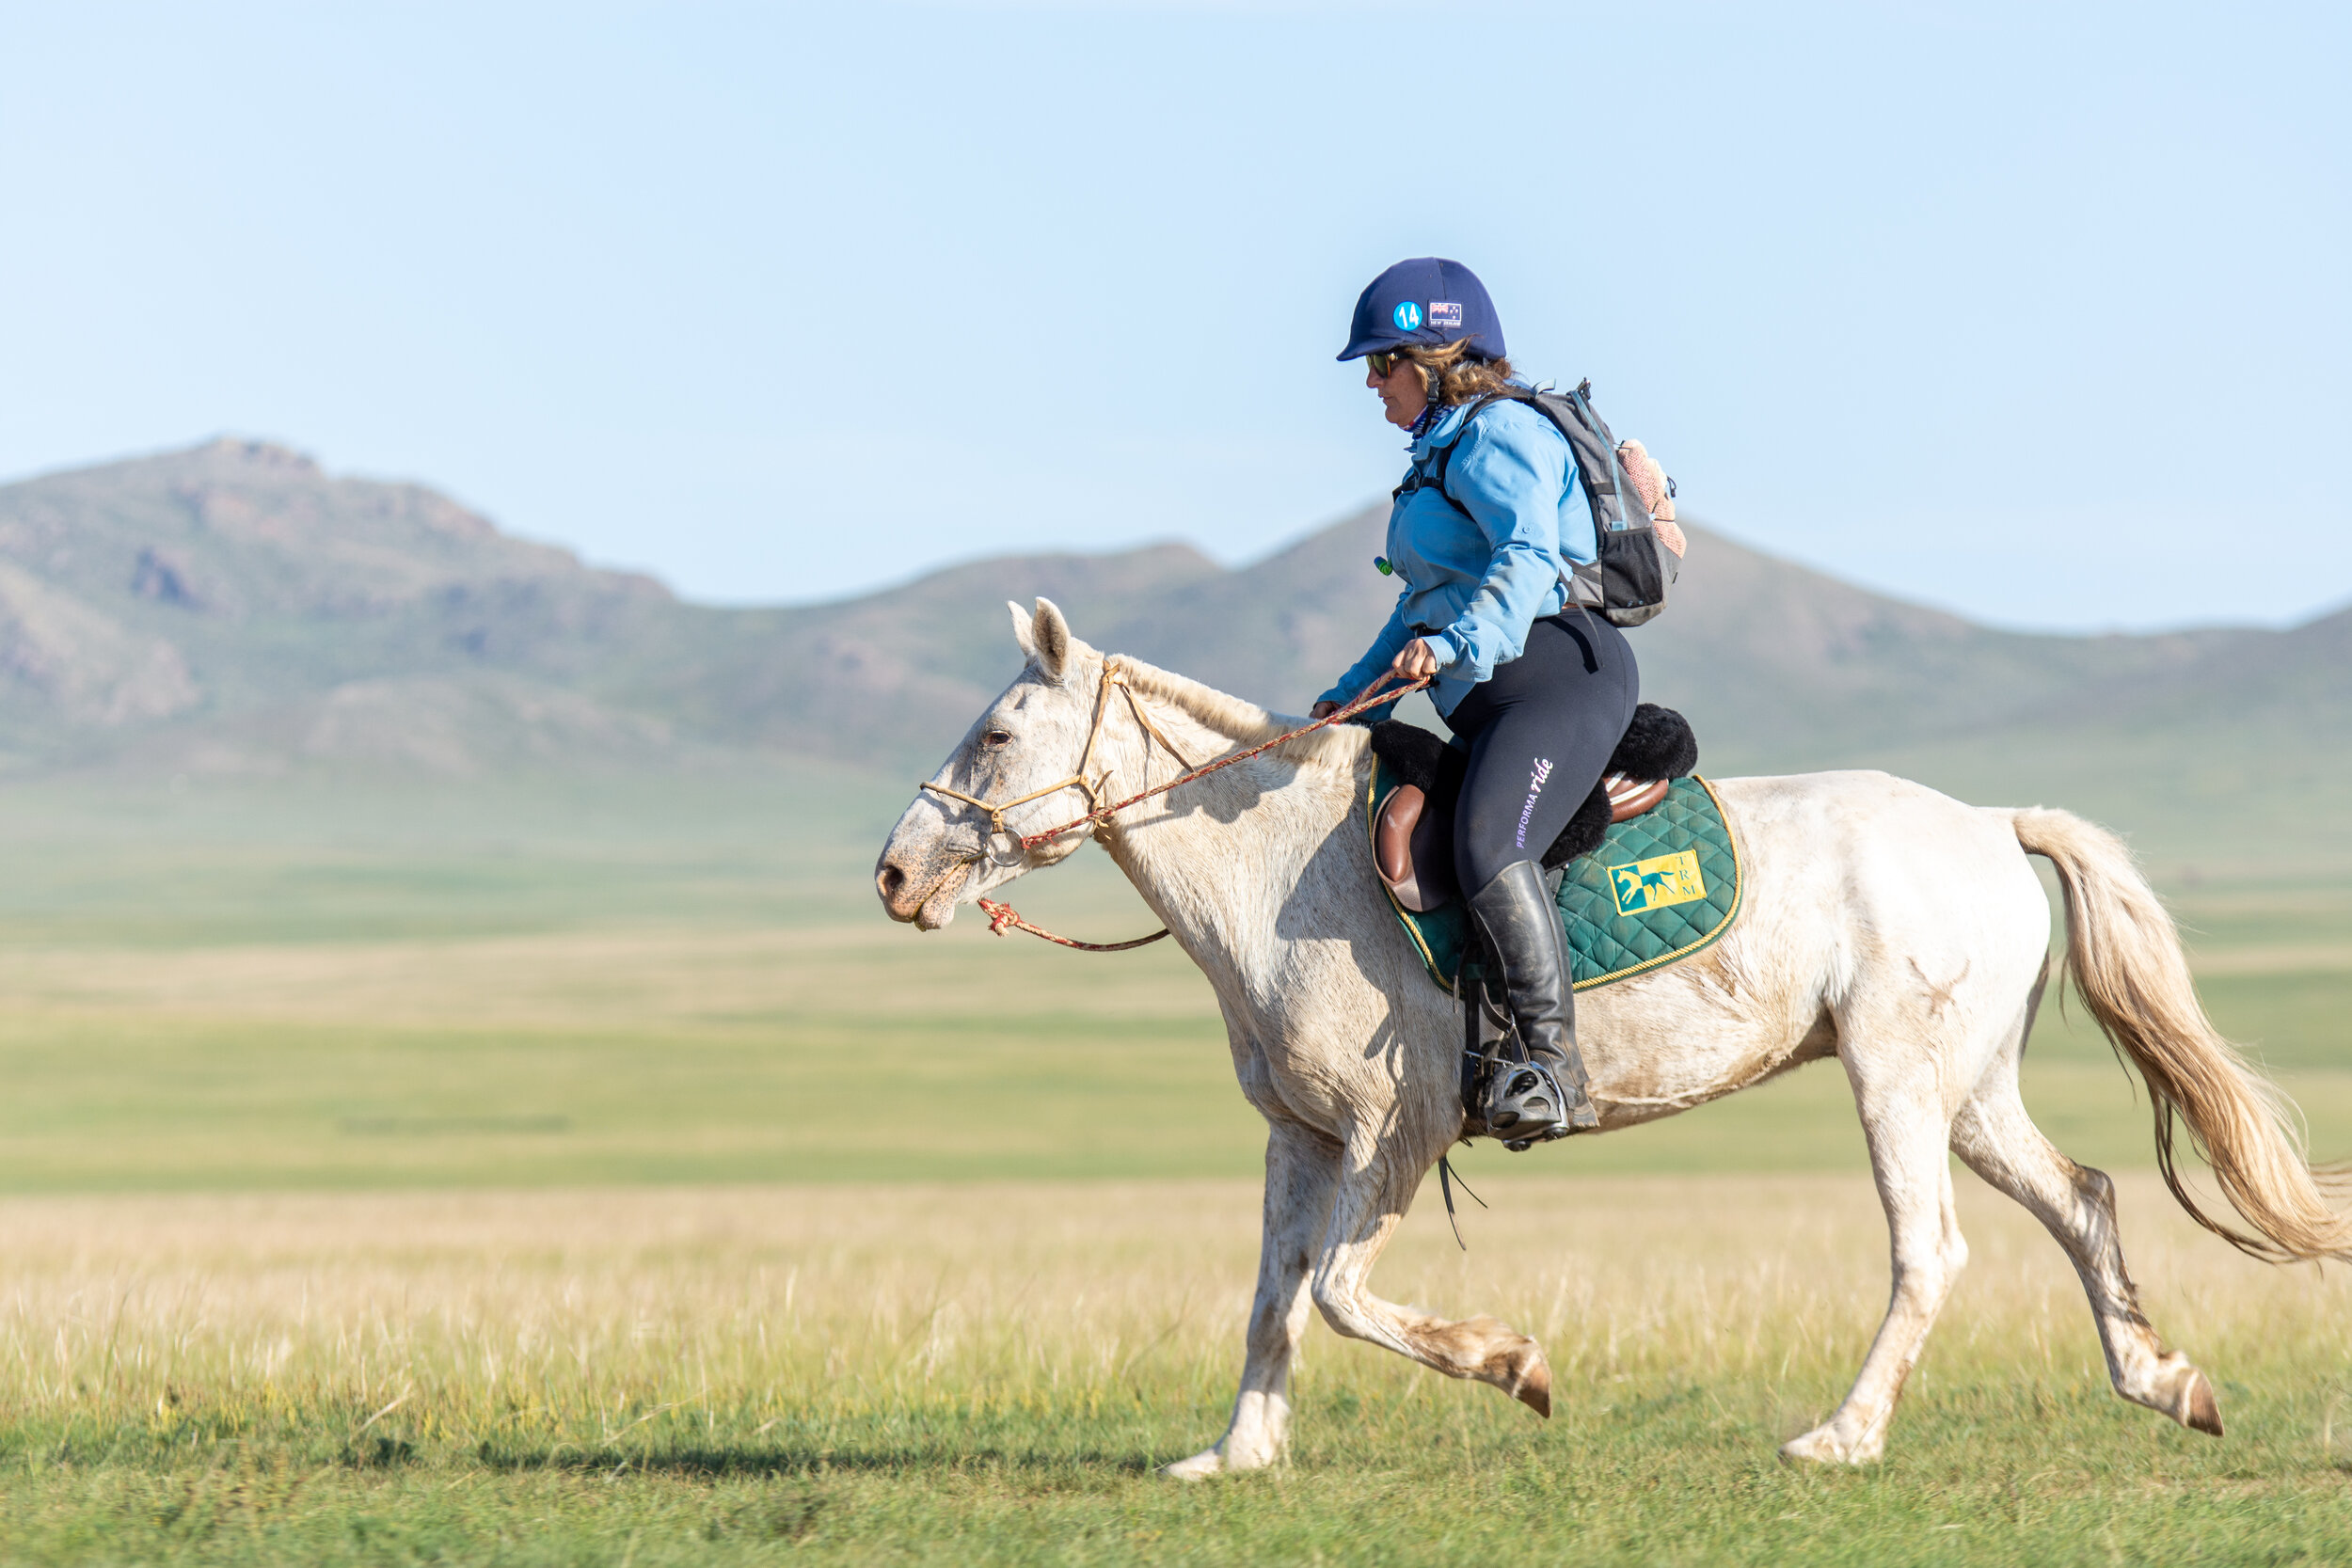 The race is a highlight in my life. The horses, the culture and the team behind it. They are truly wonderful, and I learnt so much about myself and horsemanship from my fellow riders. - Shelley Ensor, Cavalcade rider, New Zealand.